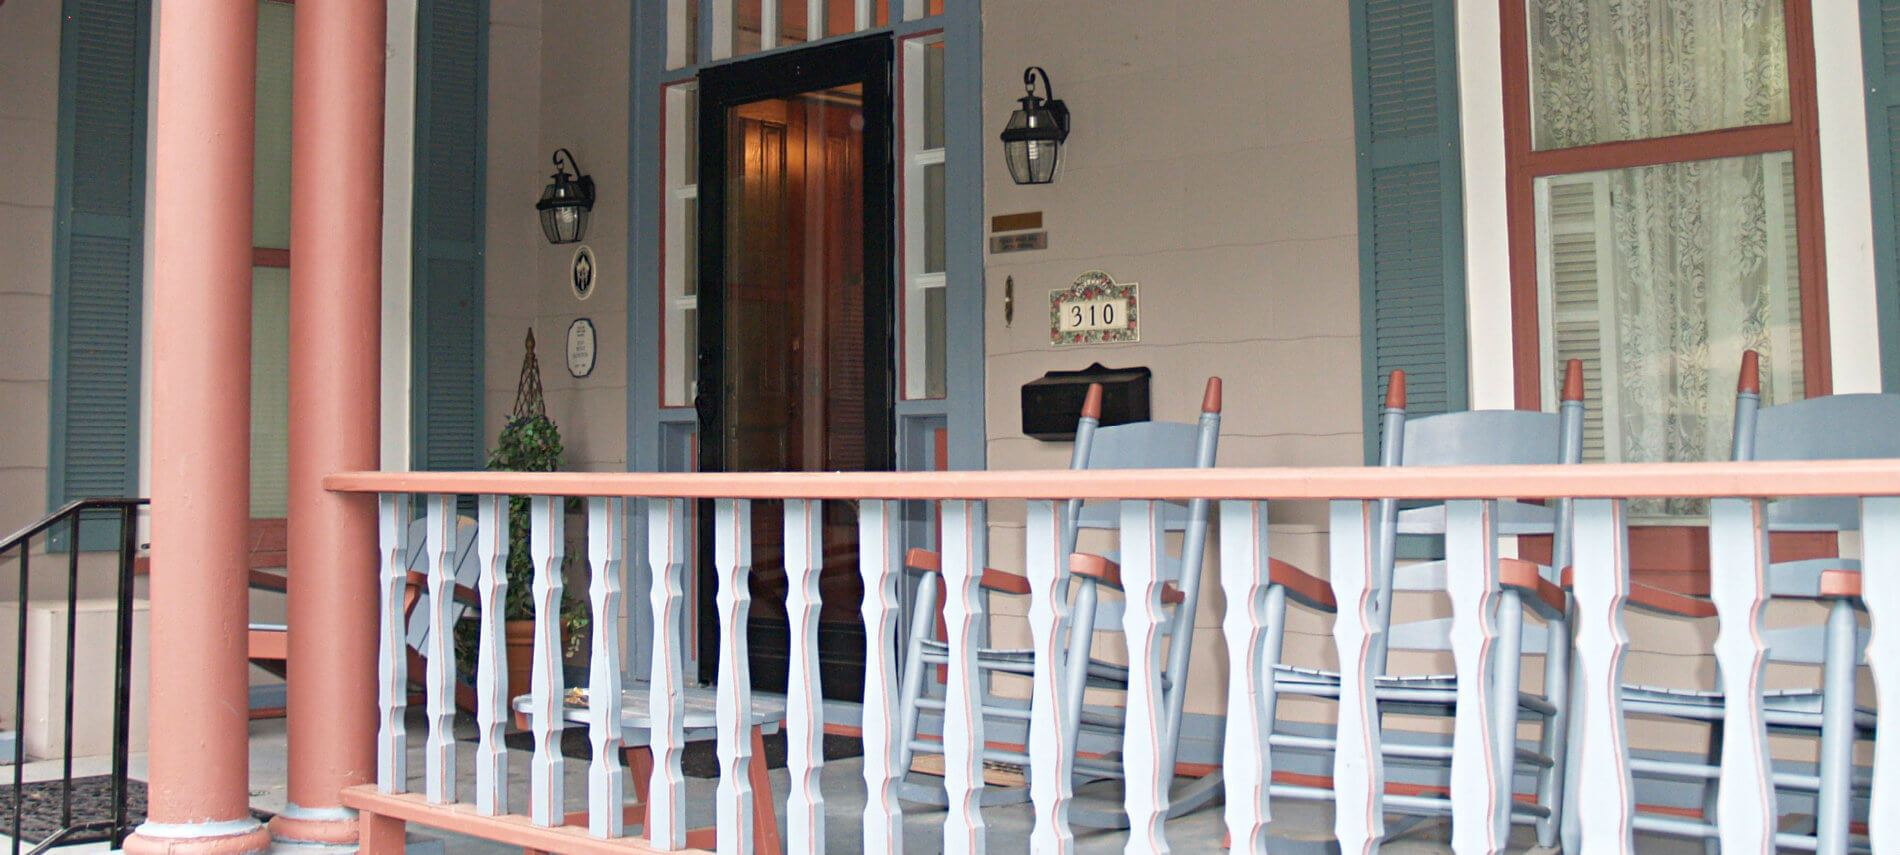 The Inn's covered front porch with several rocking chairs painted teal and rust red